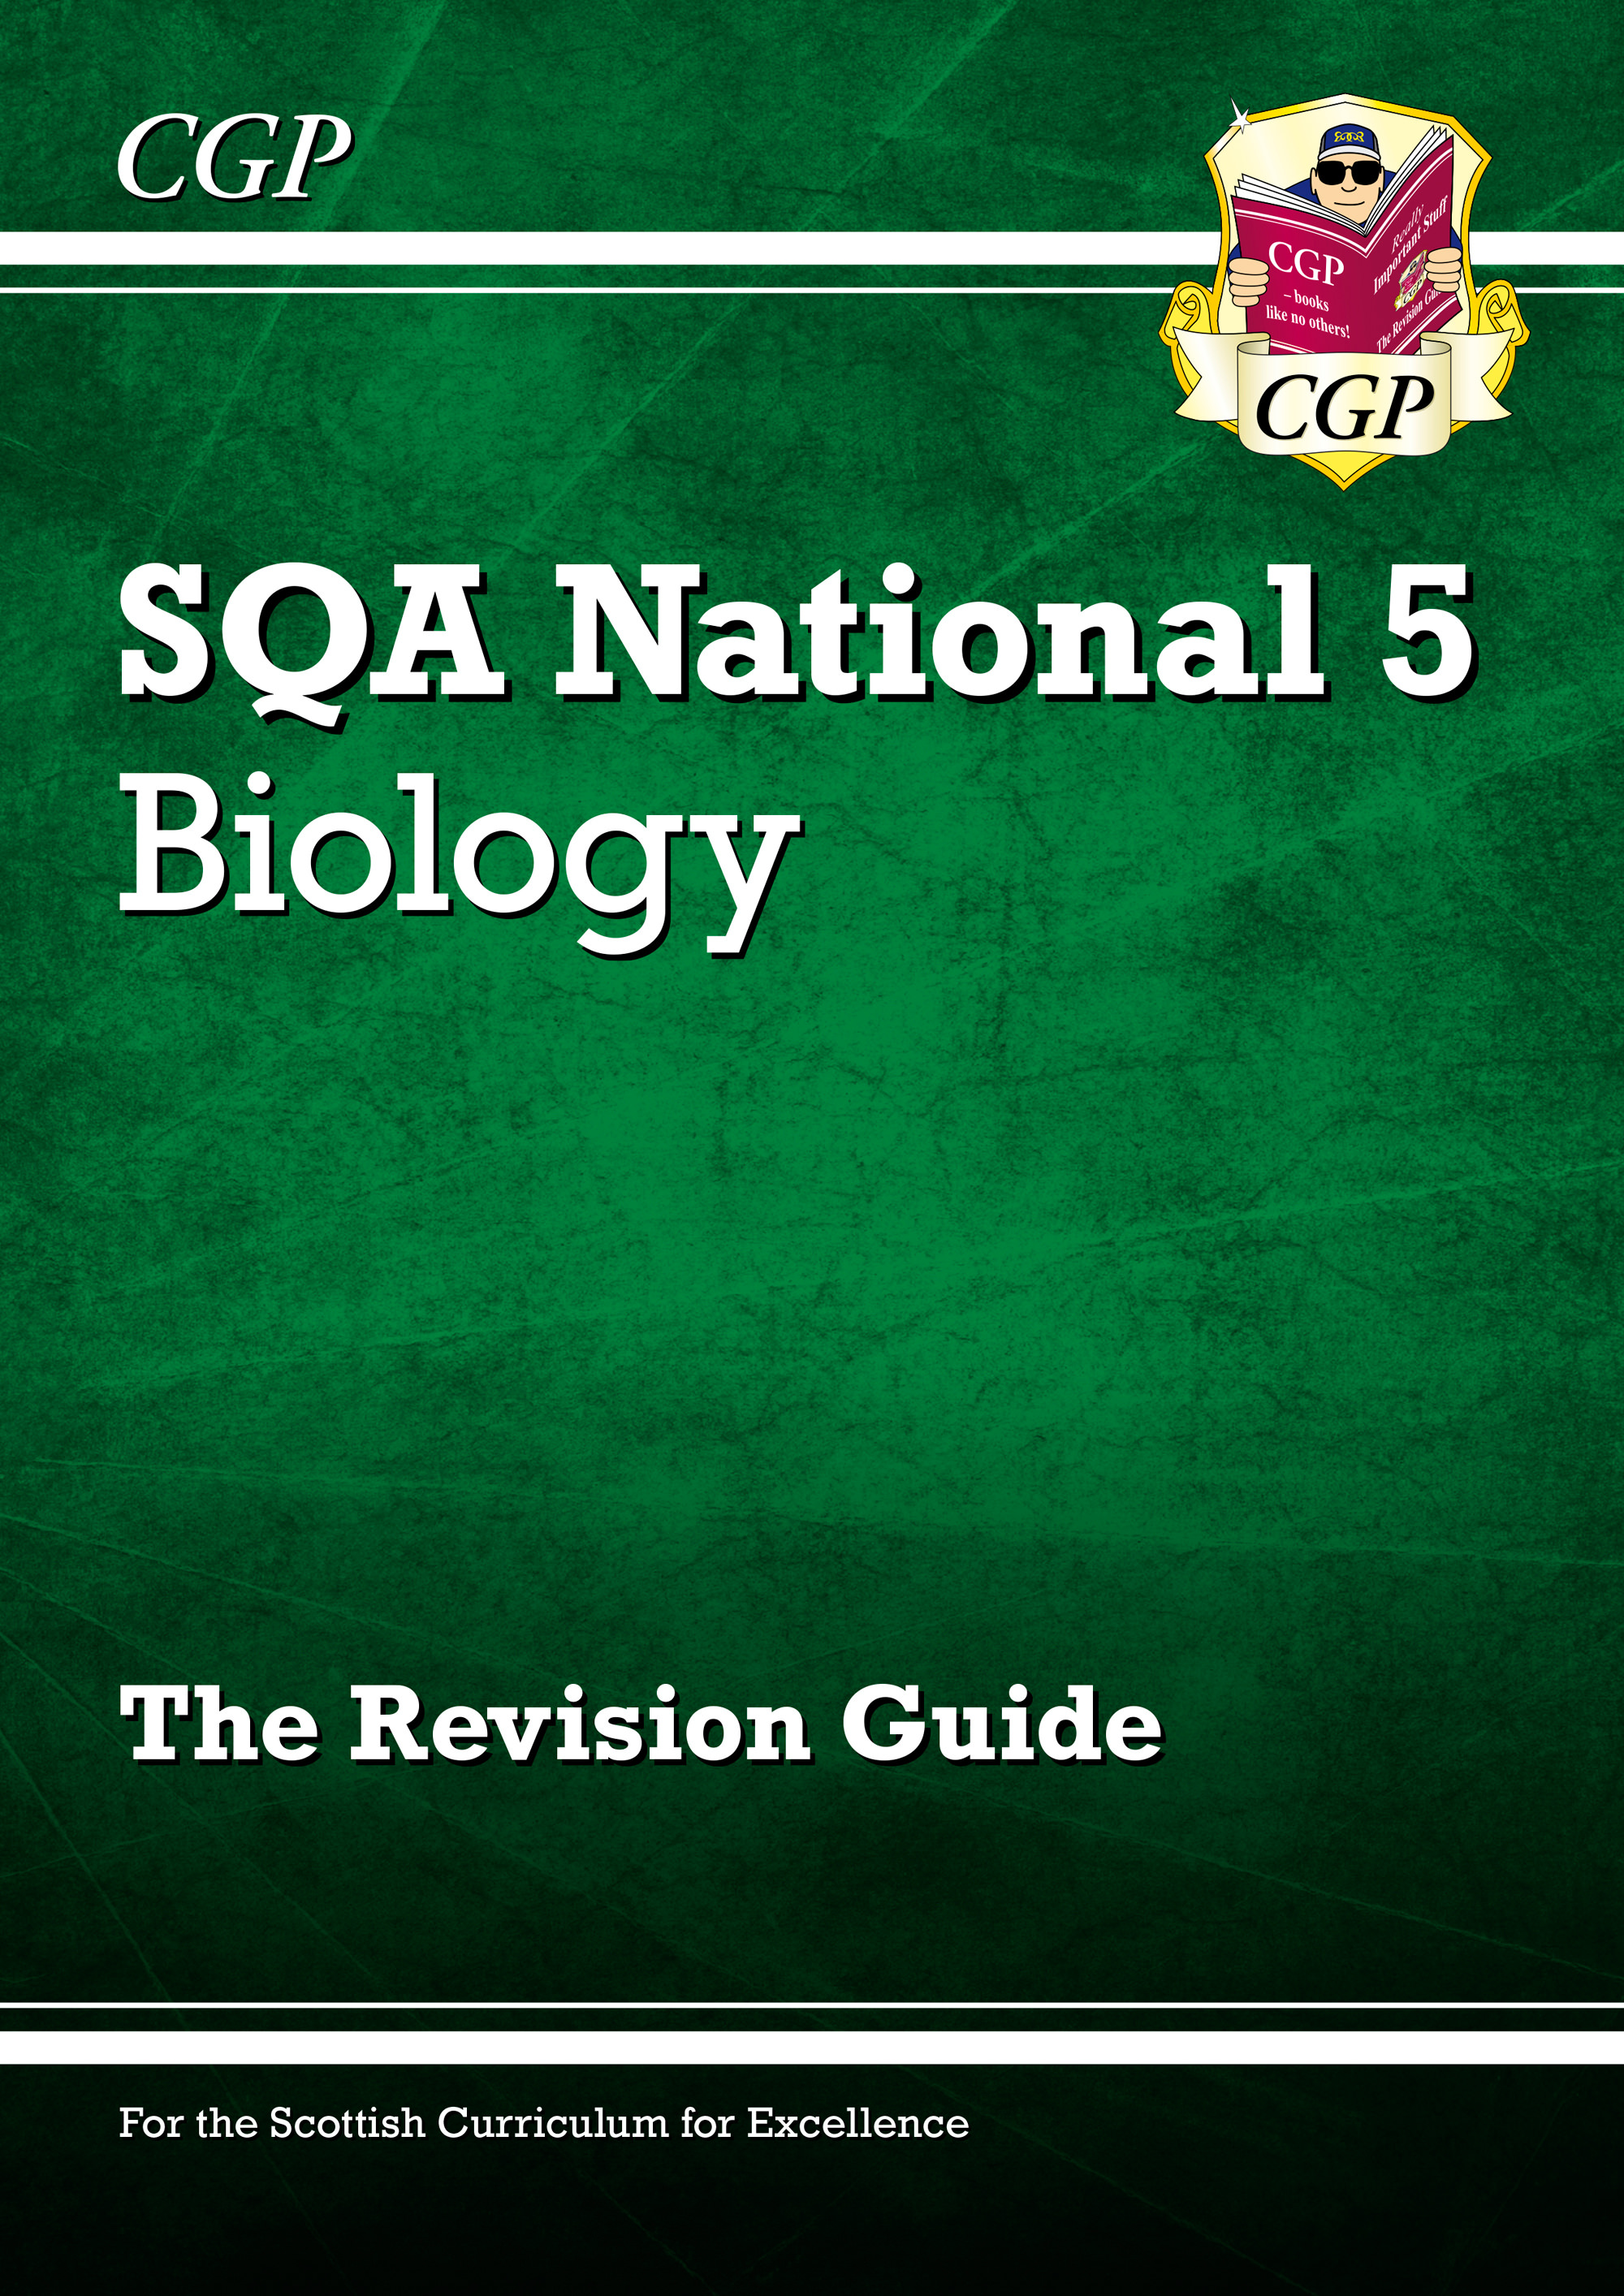 BZR41DK - New National 5 Biology: SQA Revision Guide